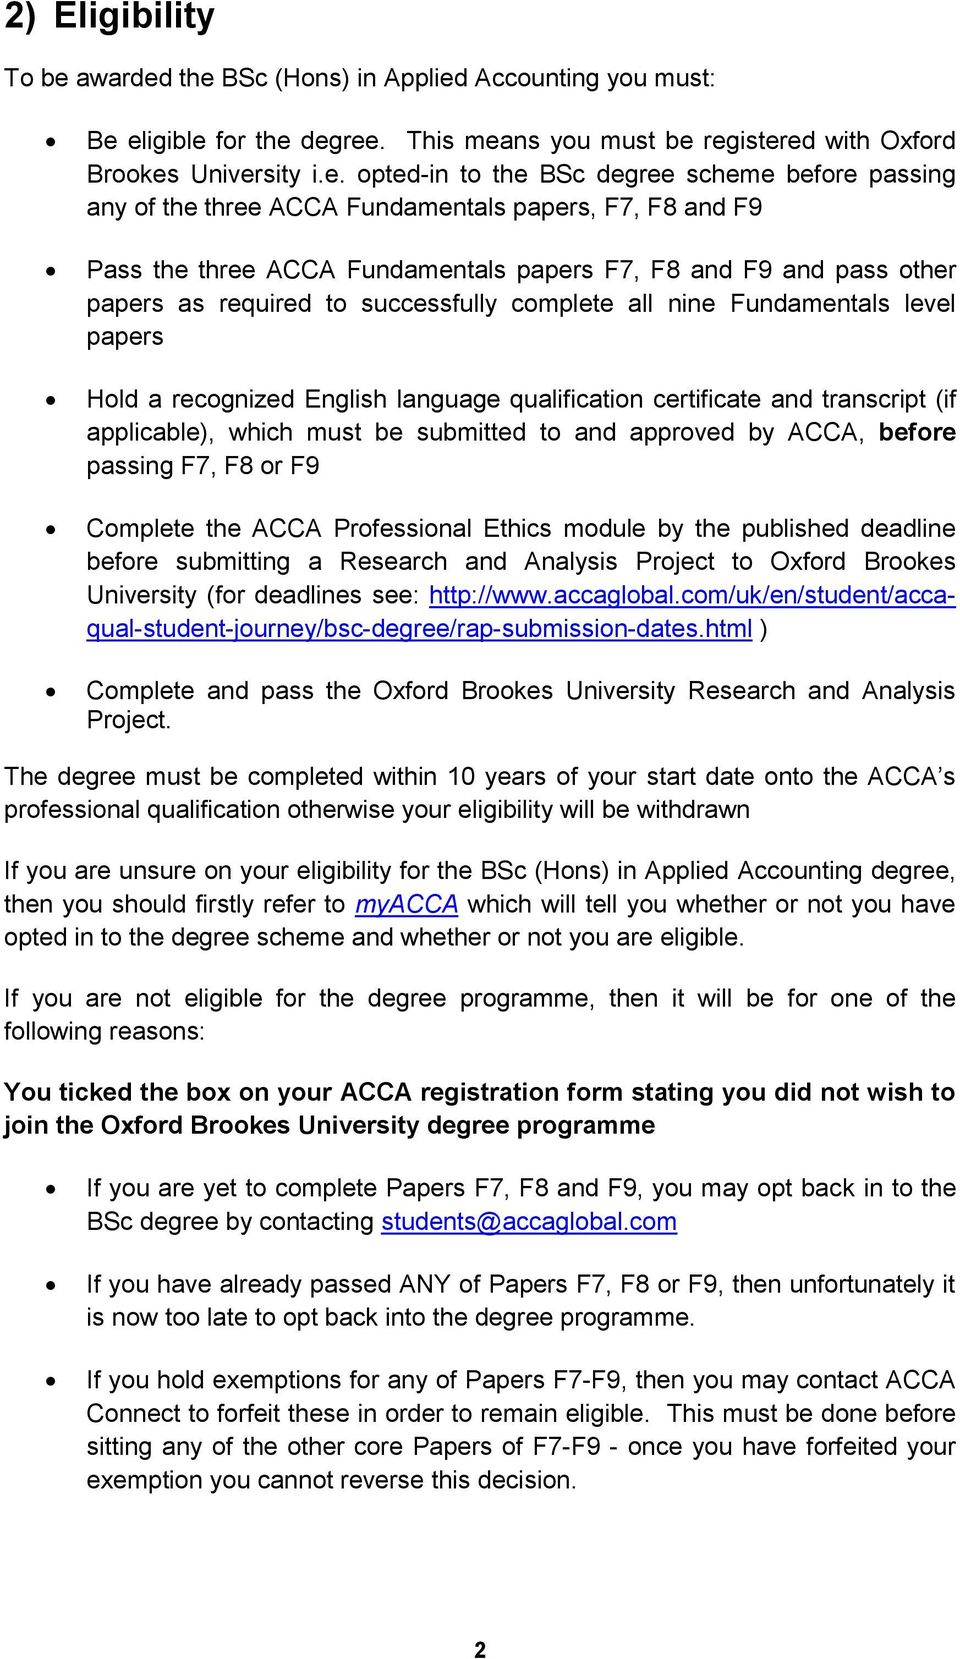 oxford brookes research and analysis project Oxfordbrookes mentors to acca students/members for oxford brookes university based on the submission deadline of research and analysis project.